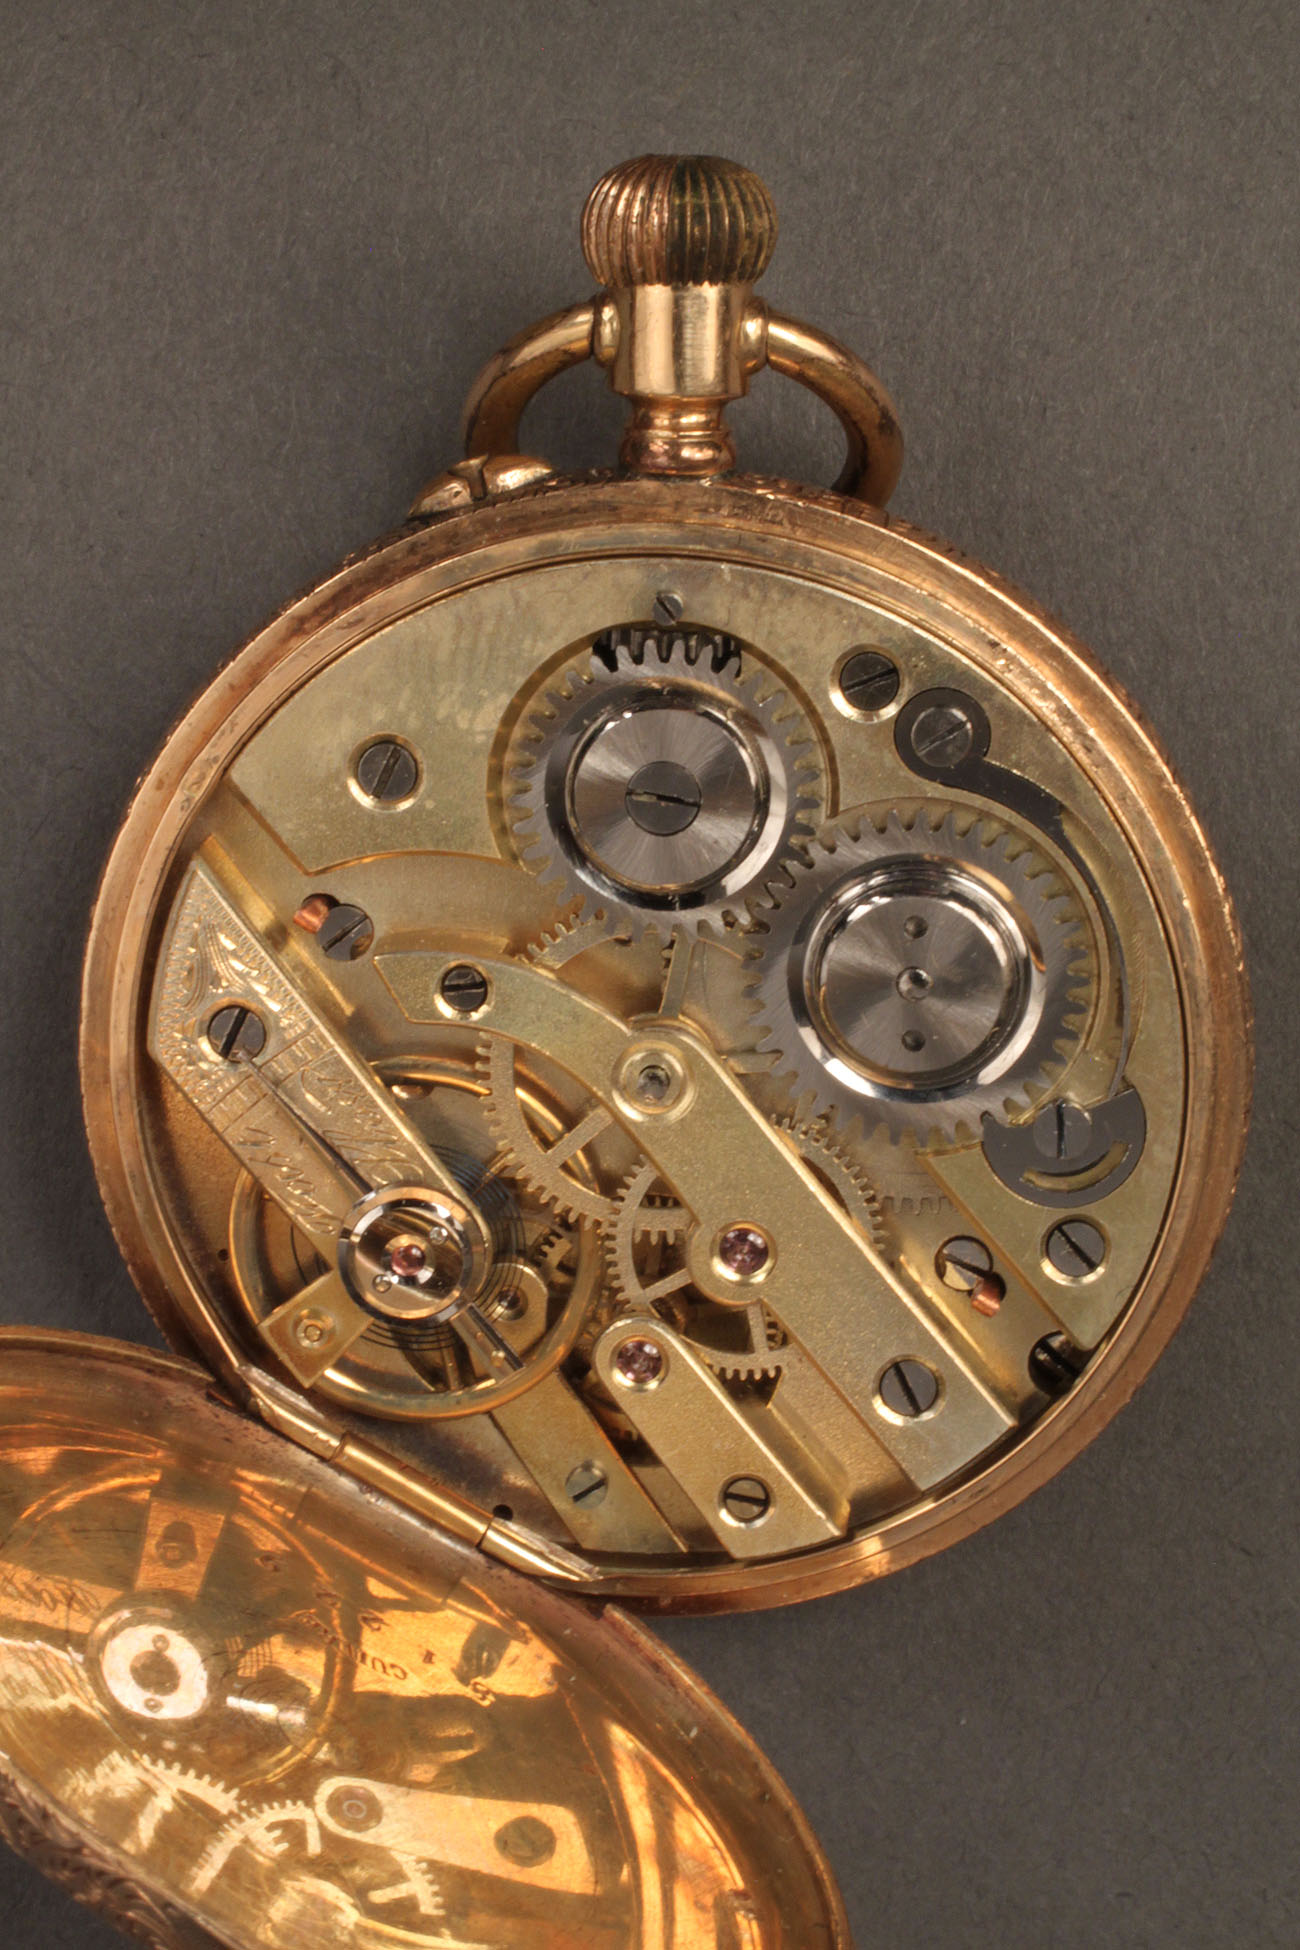 Lot 110 14k Gold Cuivre Pocket Watch